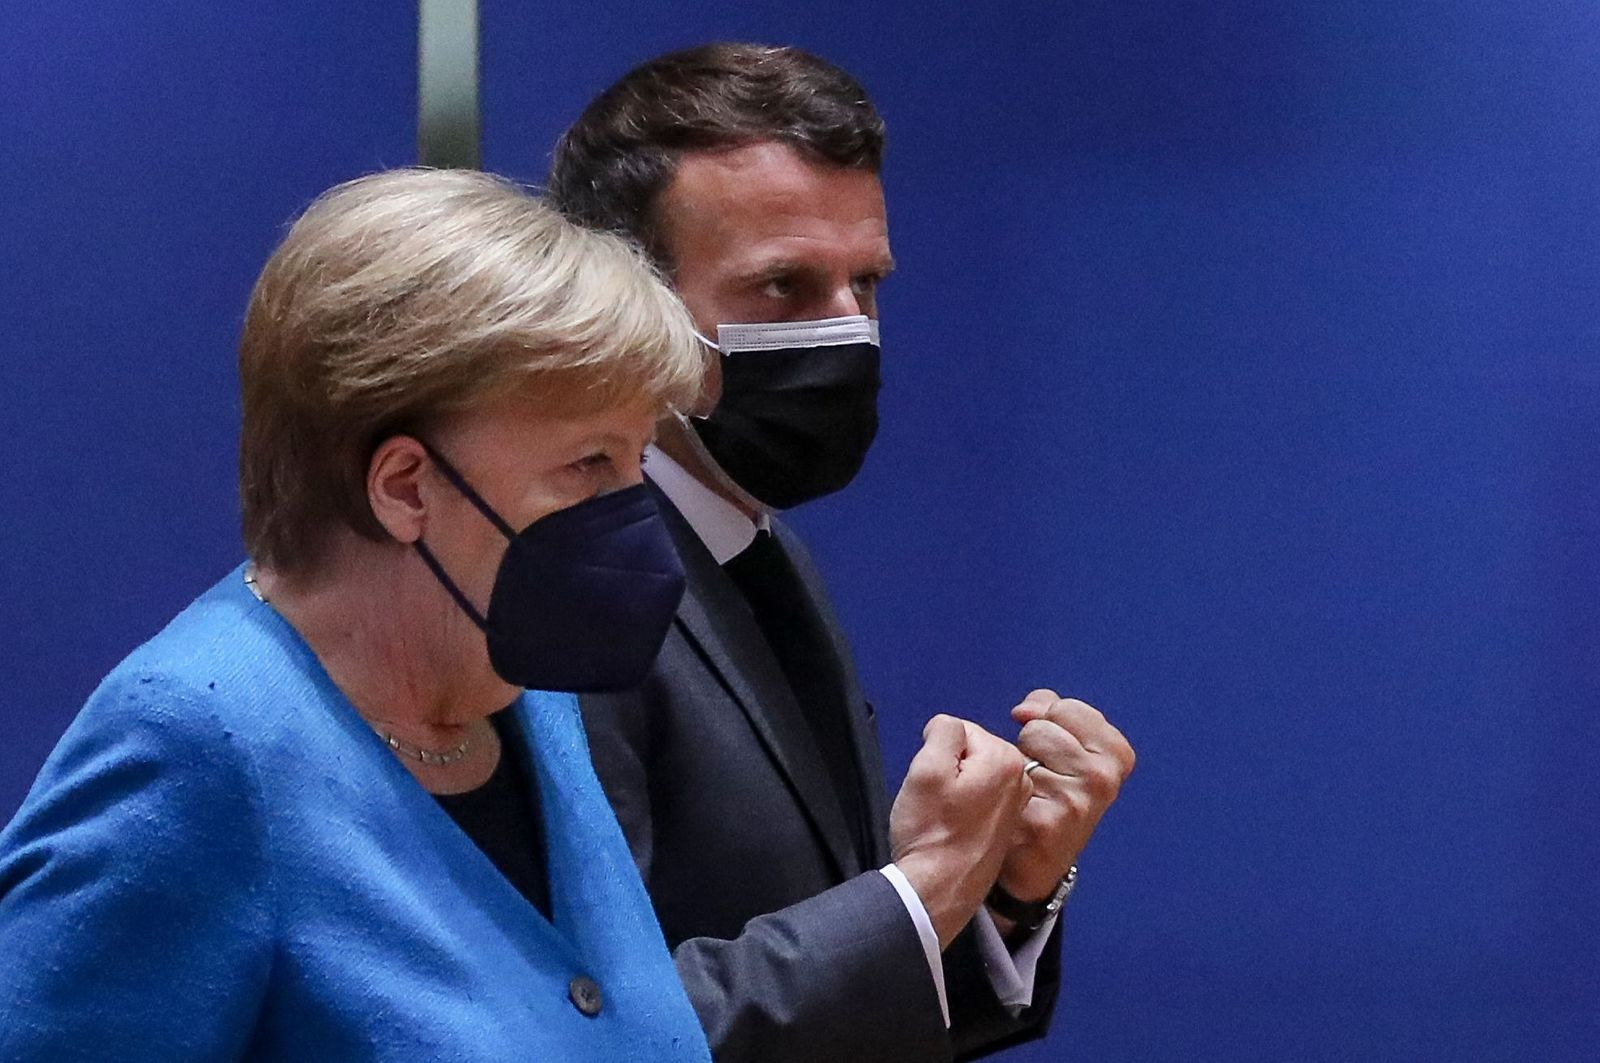 FILES-GERMANY-FRANCE-POLITICS-DIPLOMACY-GOVERNMENT